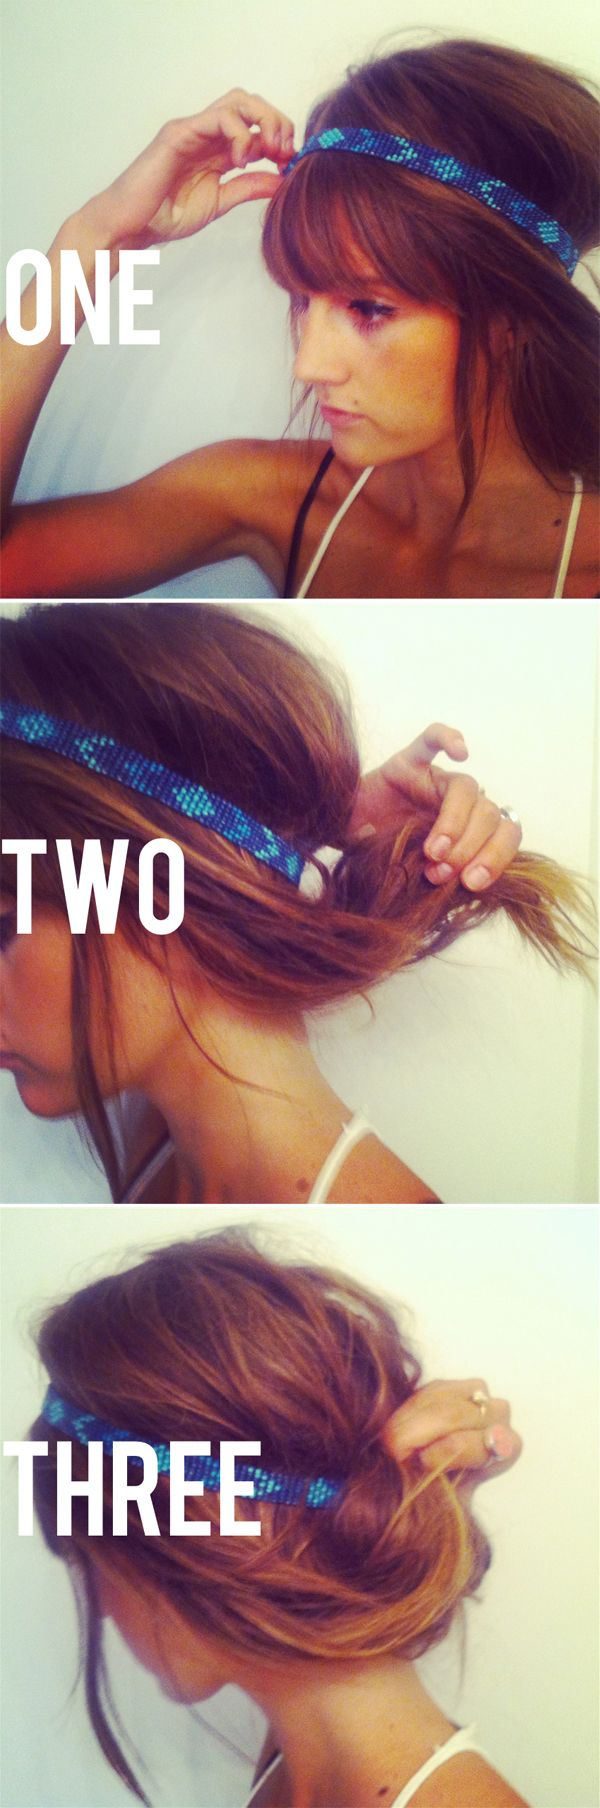 Hair Tutorial: Two Minute Tuck - Repeat Possessions' Blog